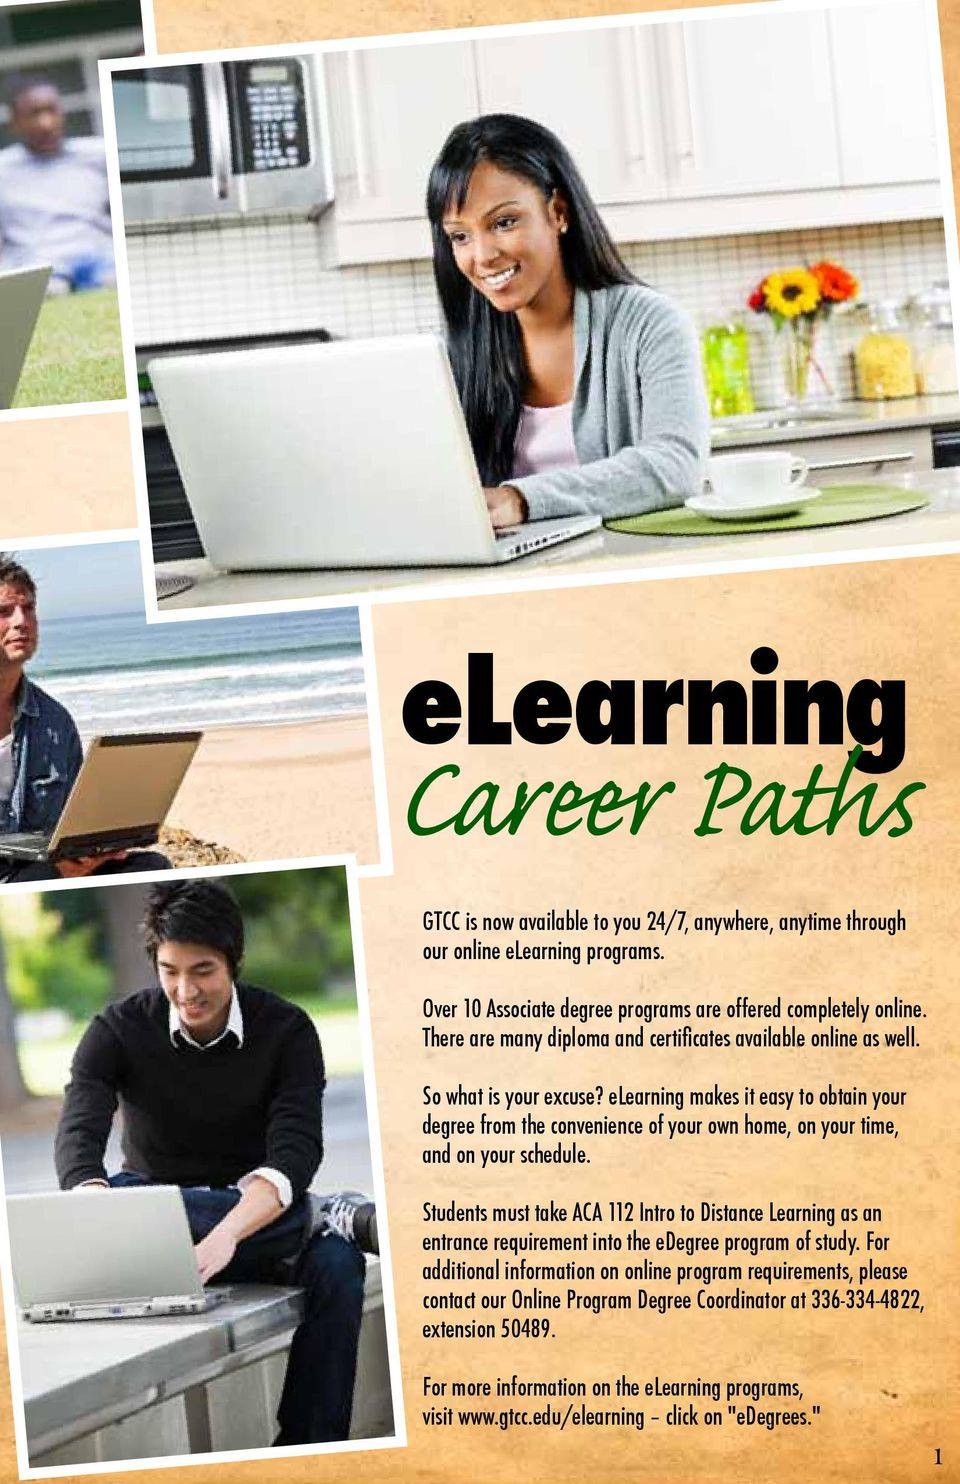 elearning makes it easy to obtain your degree from the convenience of your own home, on your time, and on your schedule.